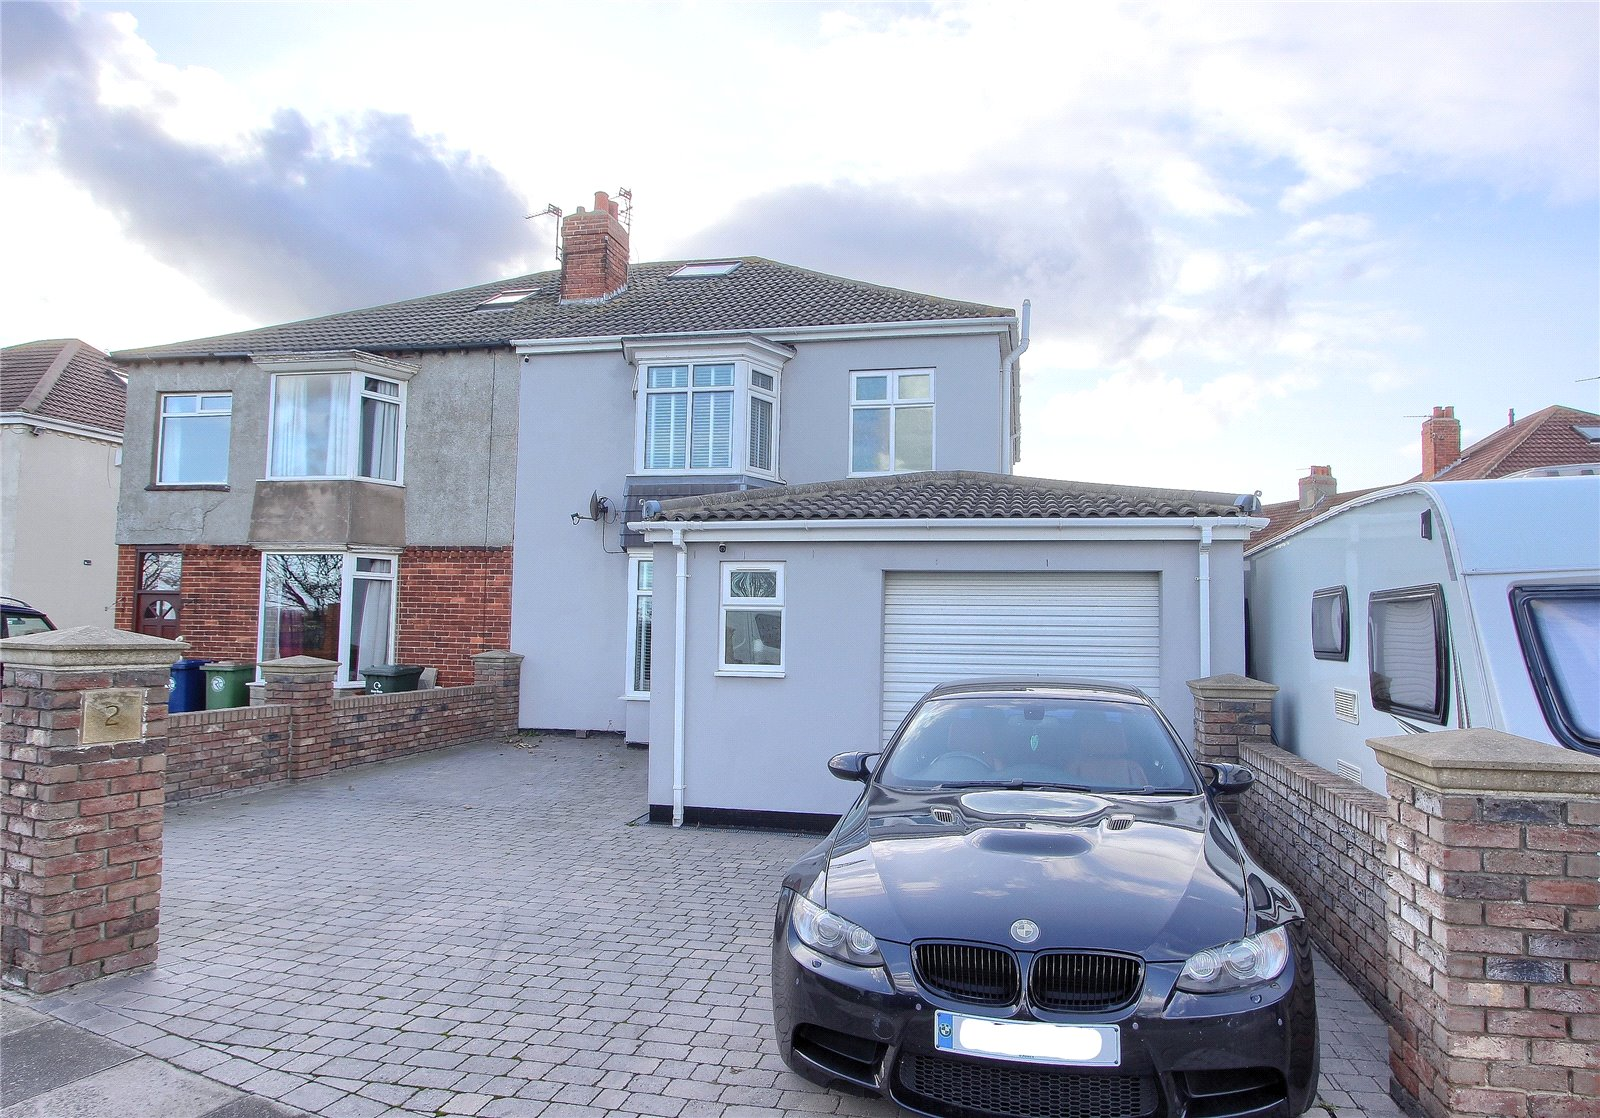 3 bed house for sale in The Crescent, Redcar 1